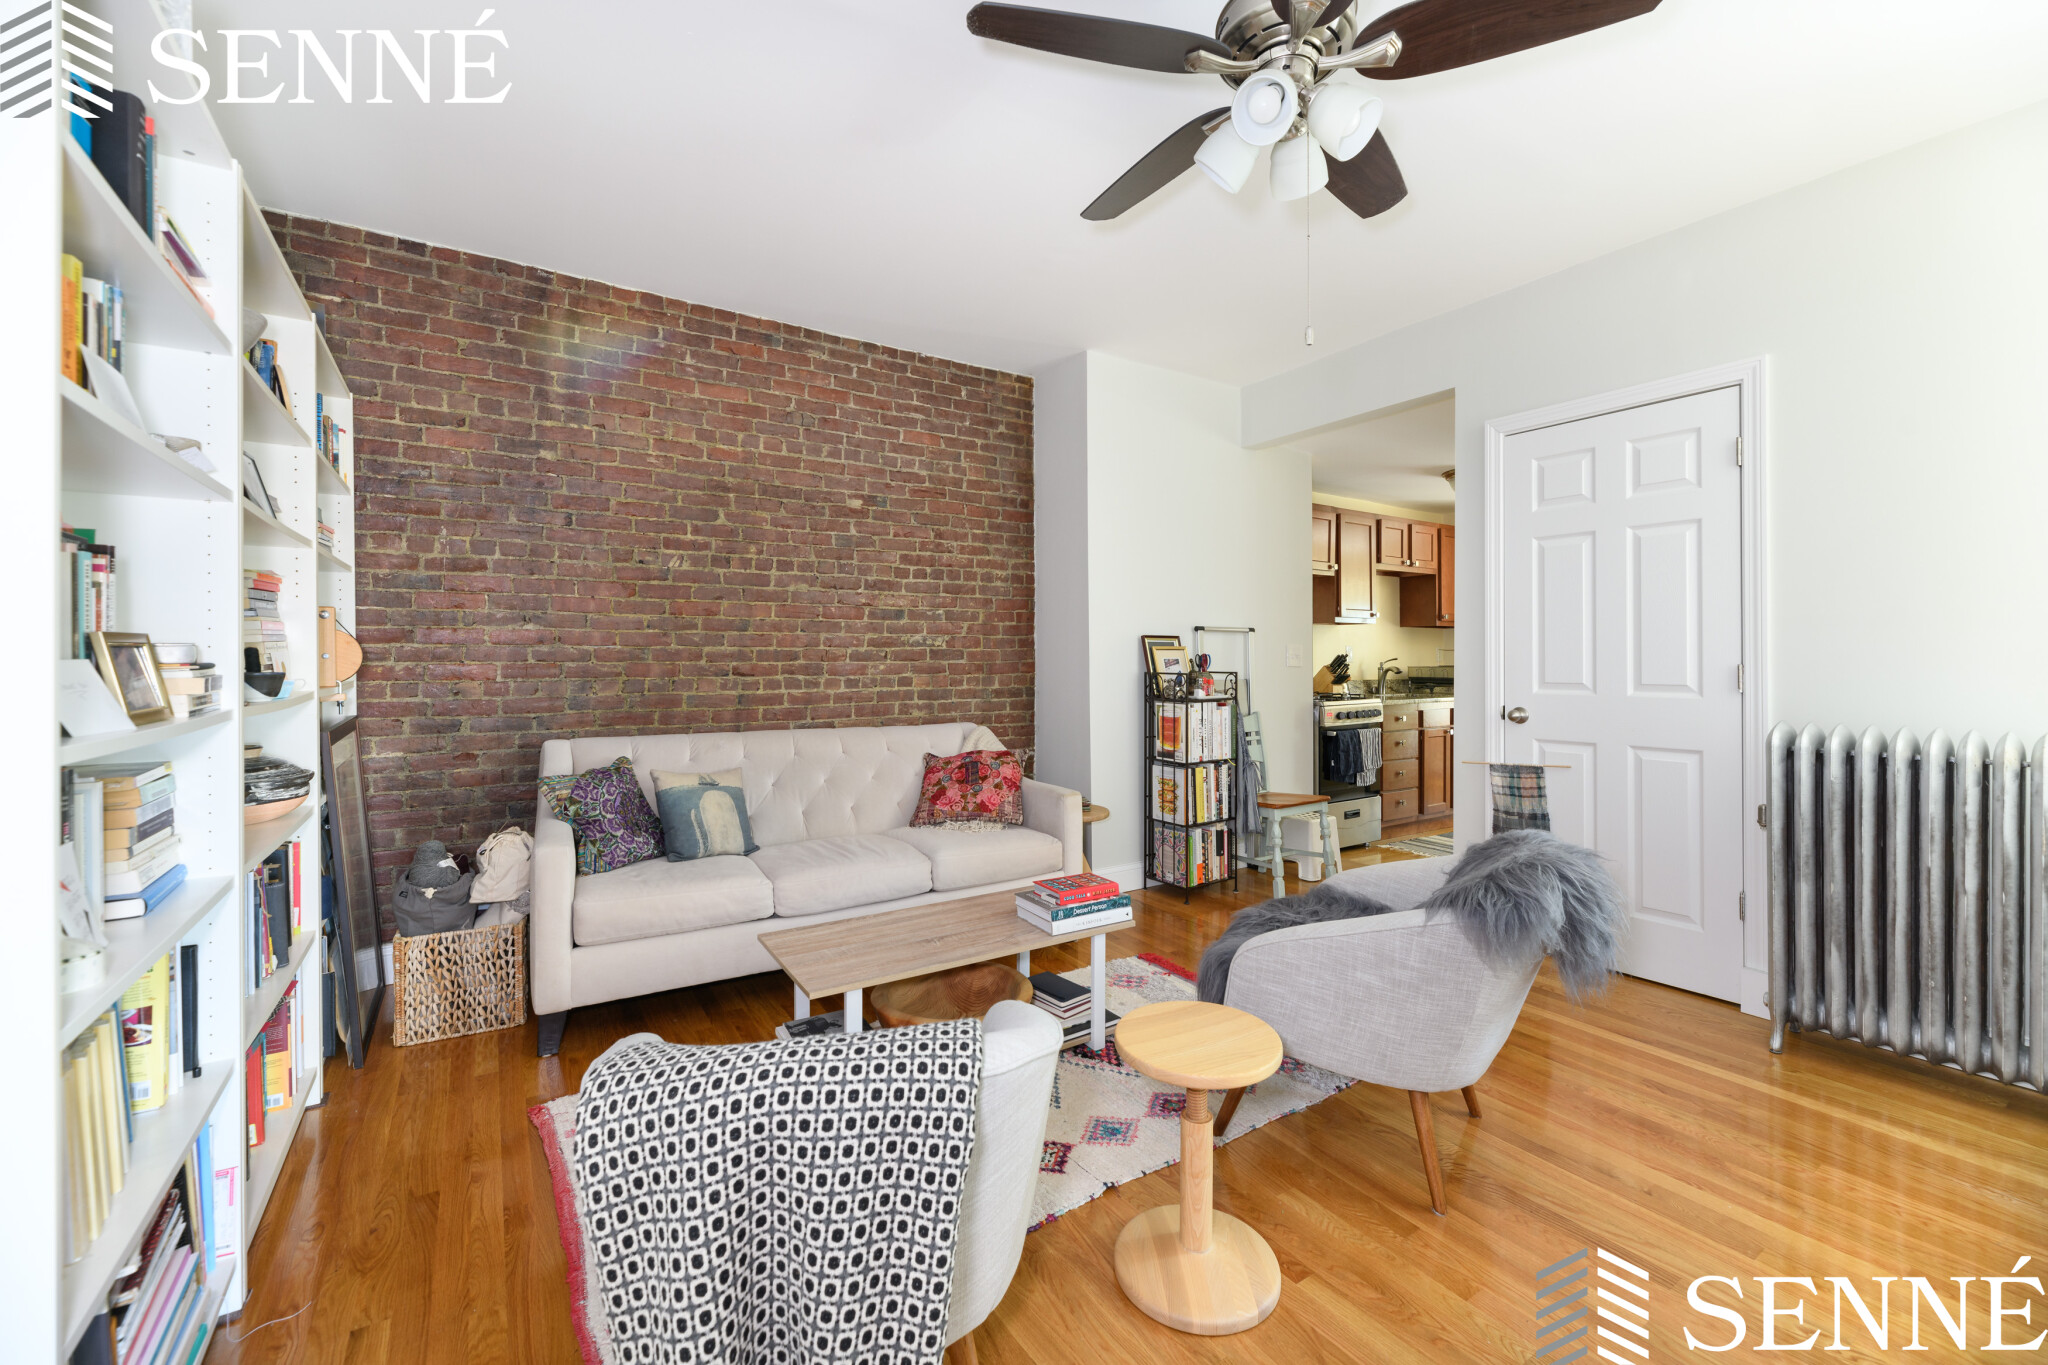 1 Bed, 1 Bath apartment in Somerville for $2,050